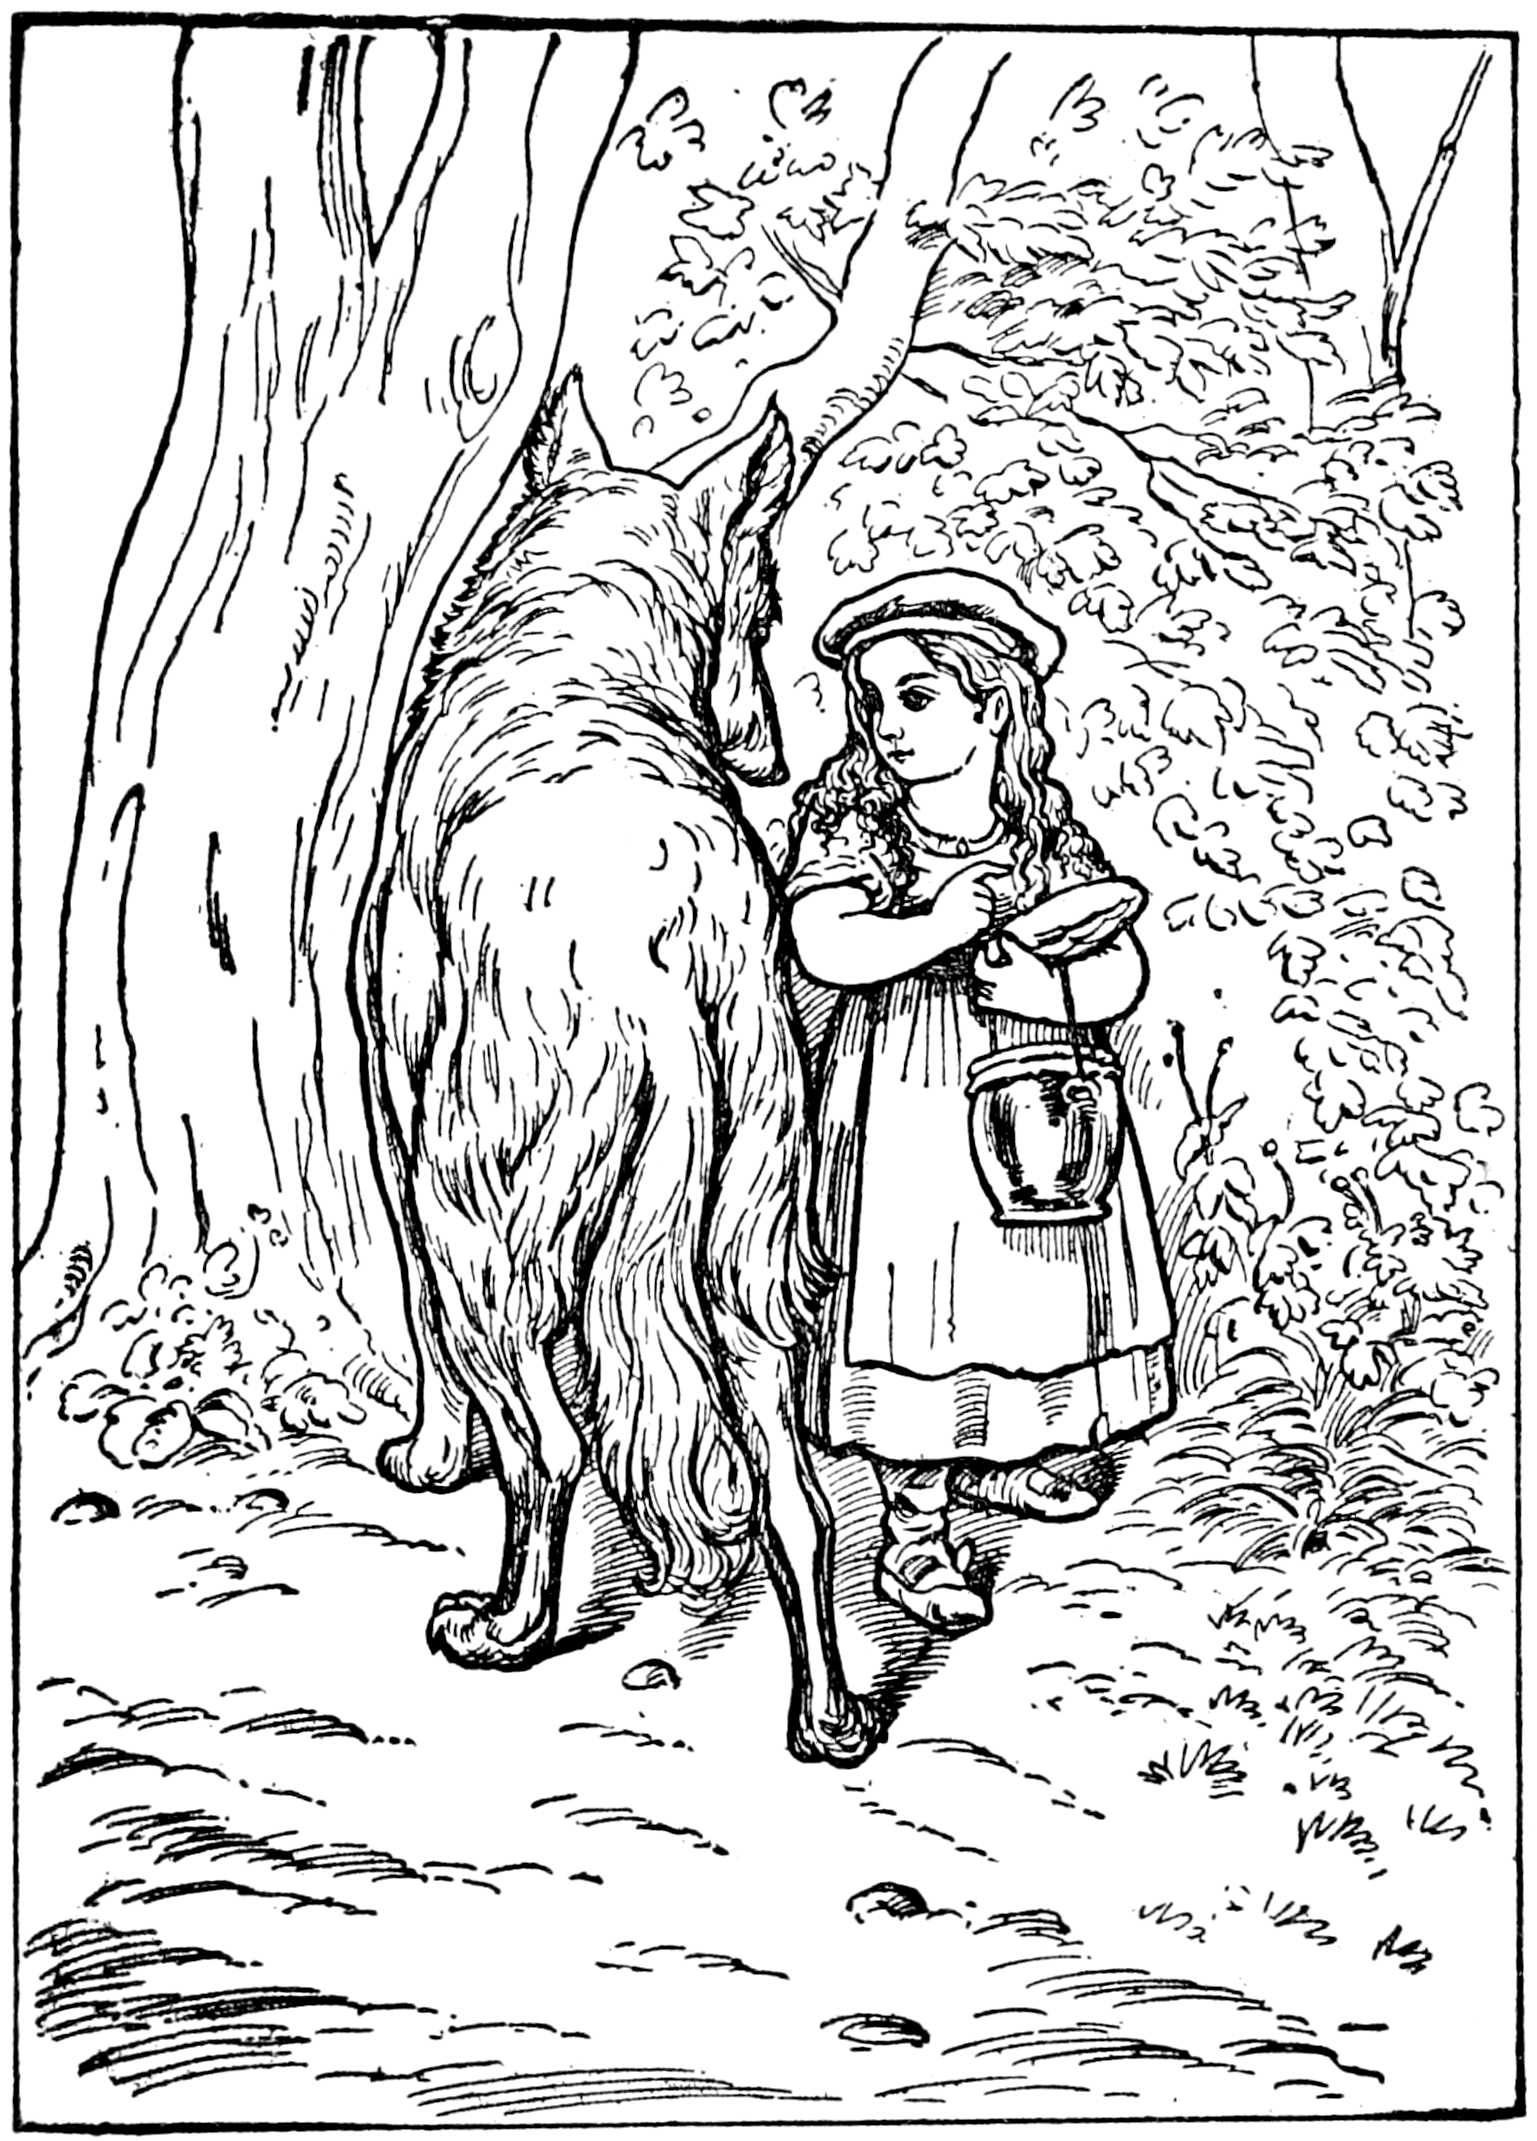 red riding hood coloring pages.html